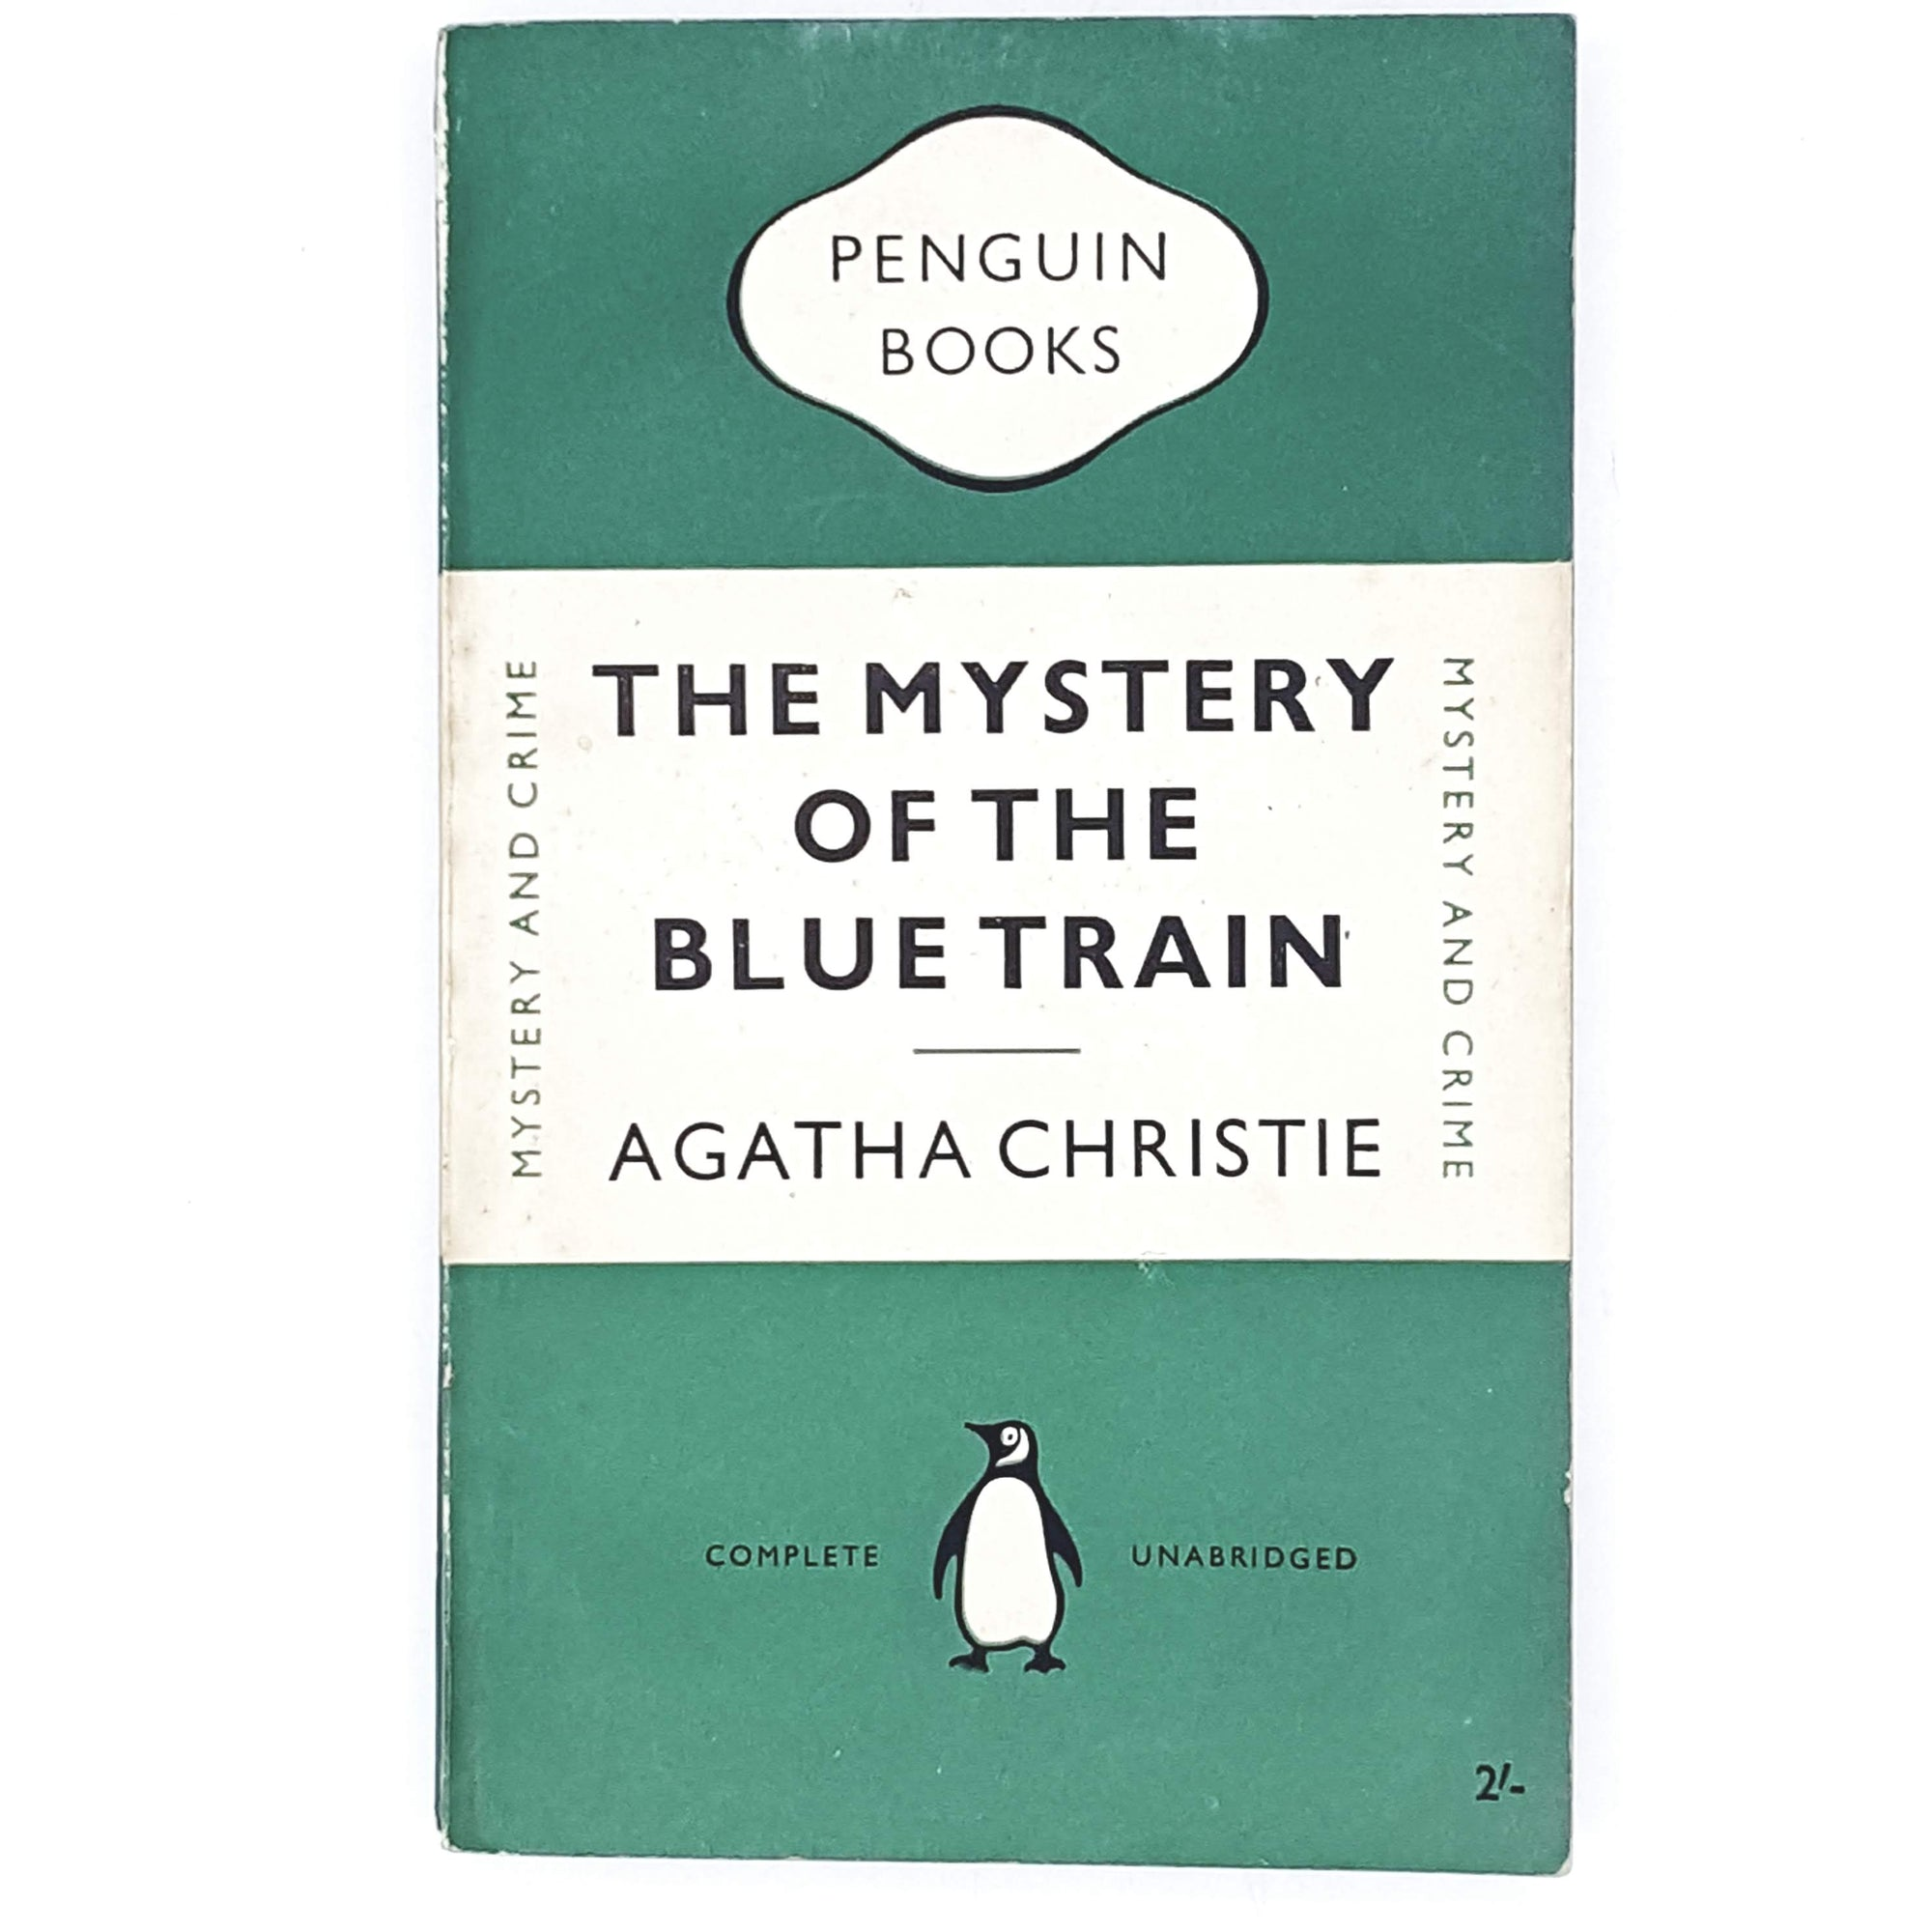 Agatha Christie's The Mystery of the Blue Train 1948 - 1951